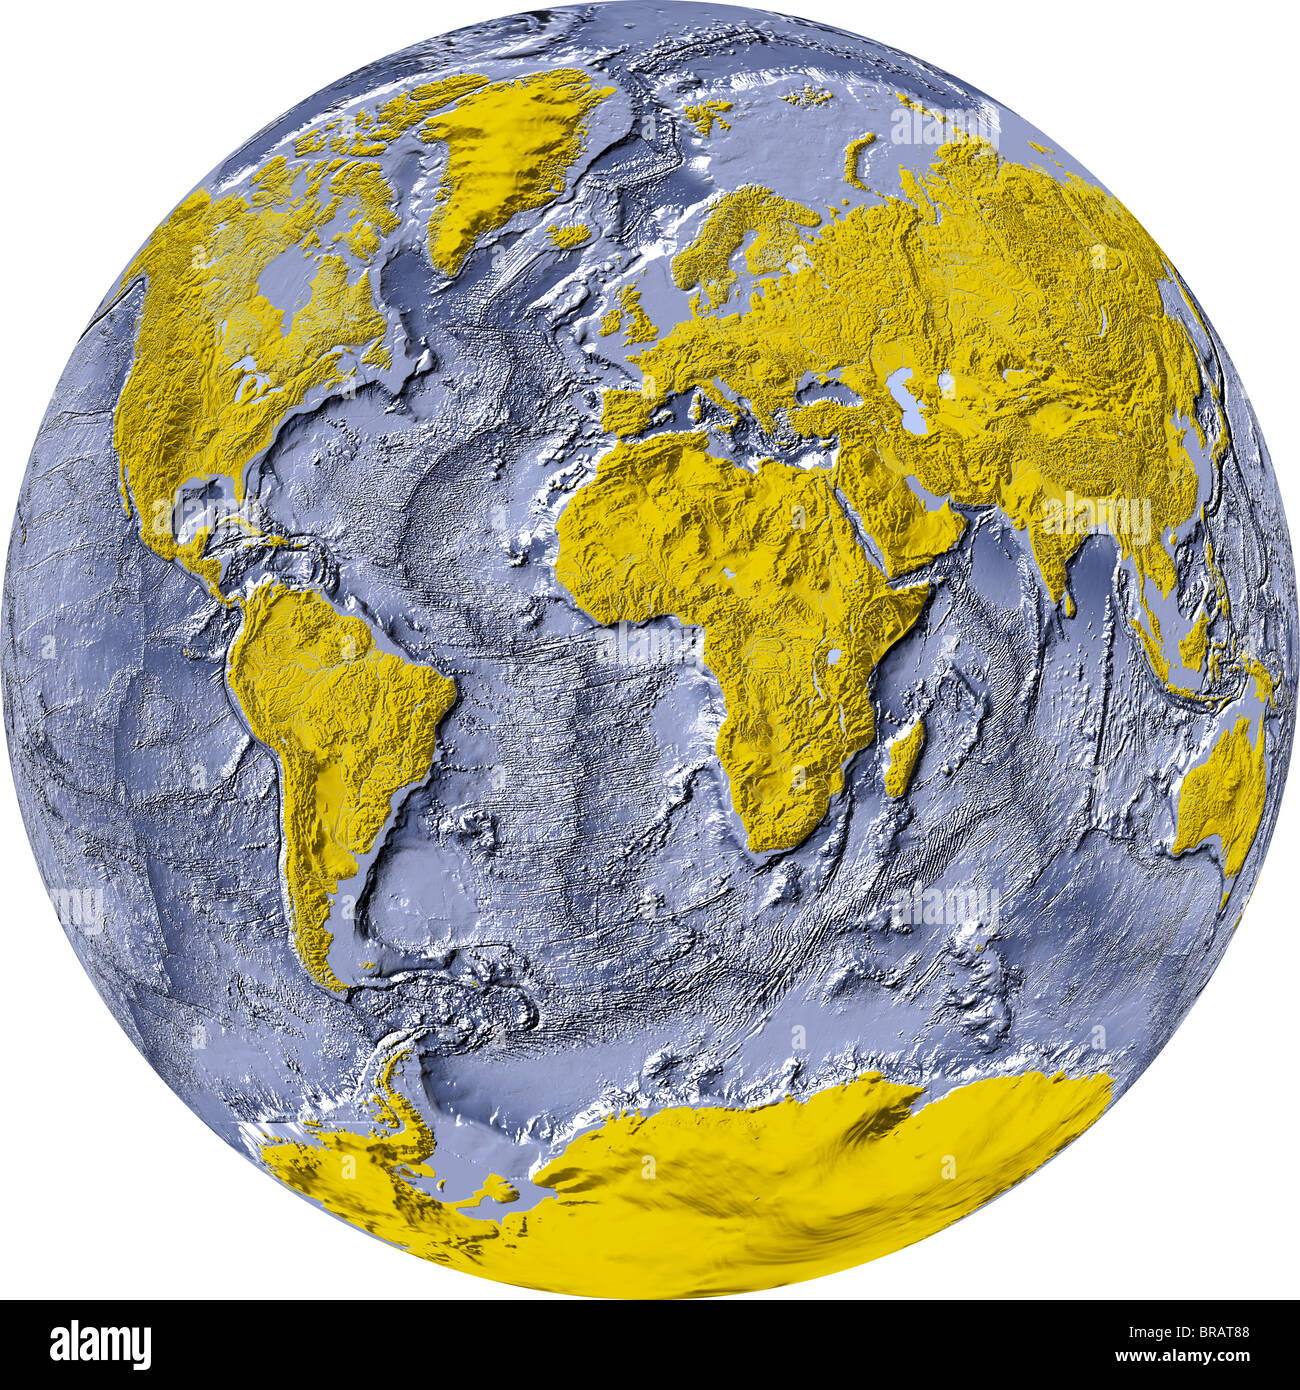 World map showing the whole world on one side of a sphere Stock